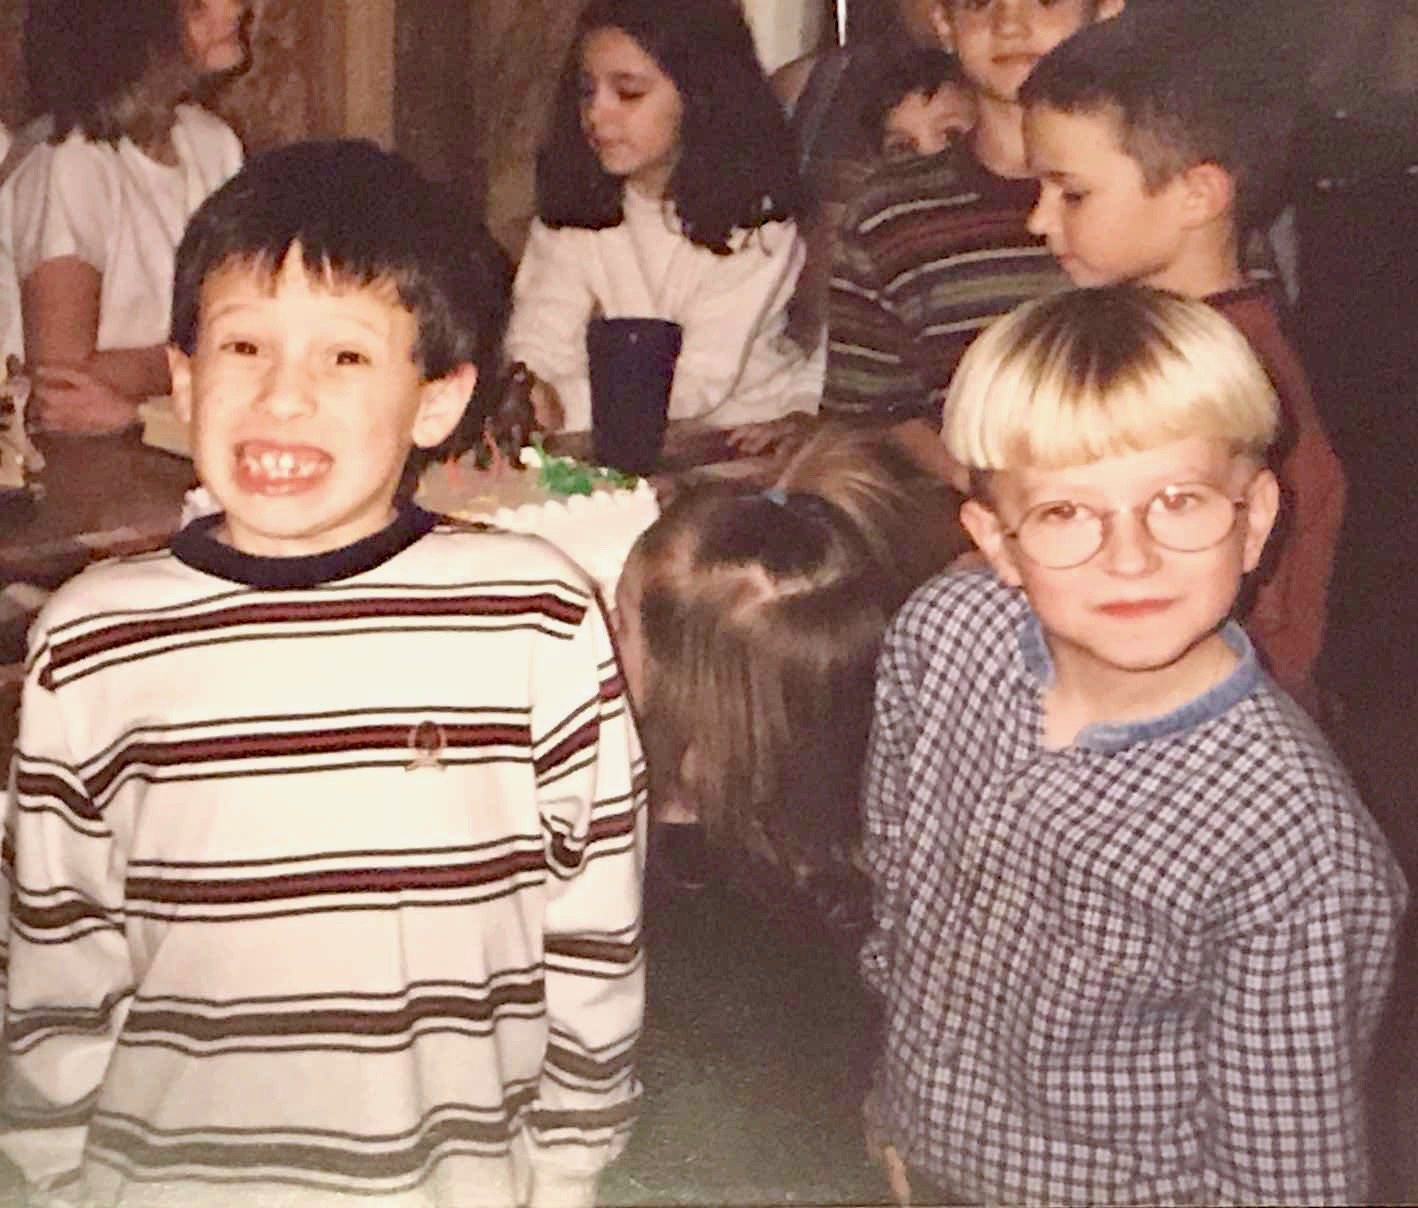 Chris and Jay, best friends throughout elementary and junior high school, at a birthday party.